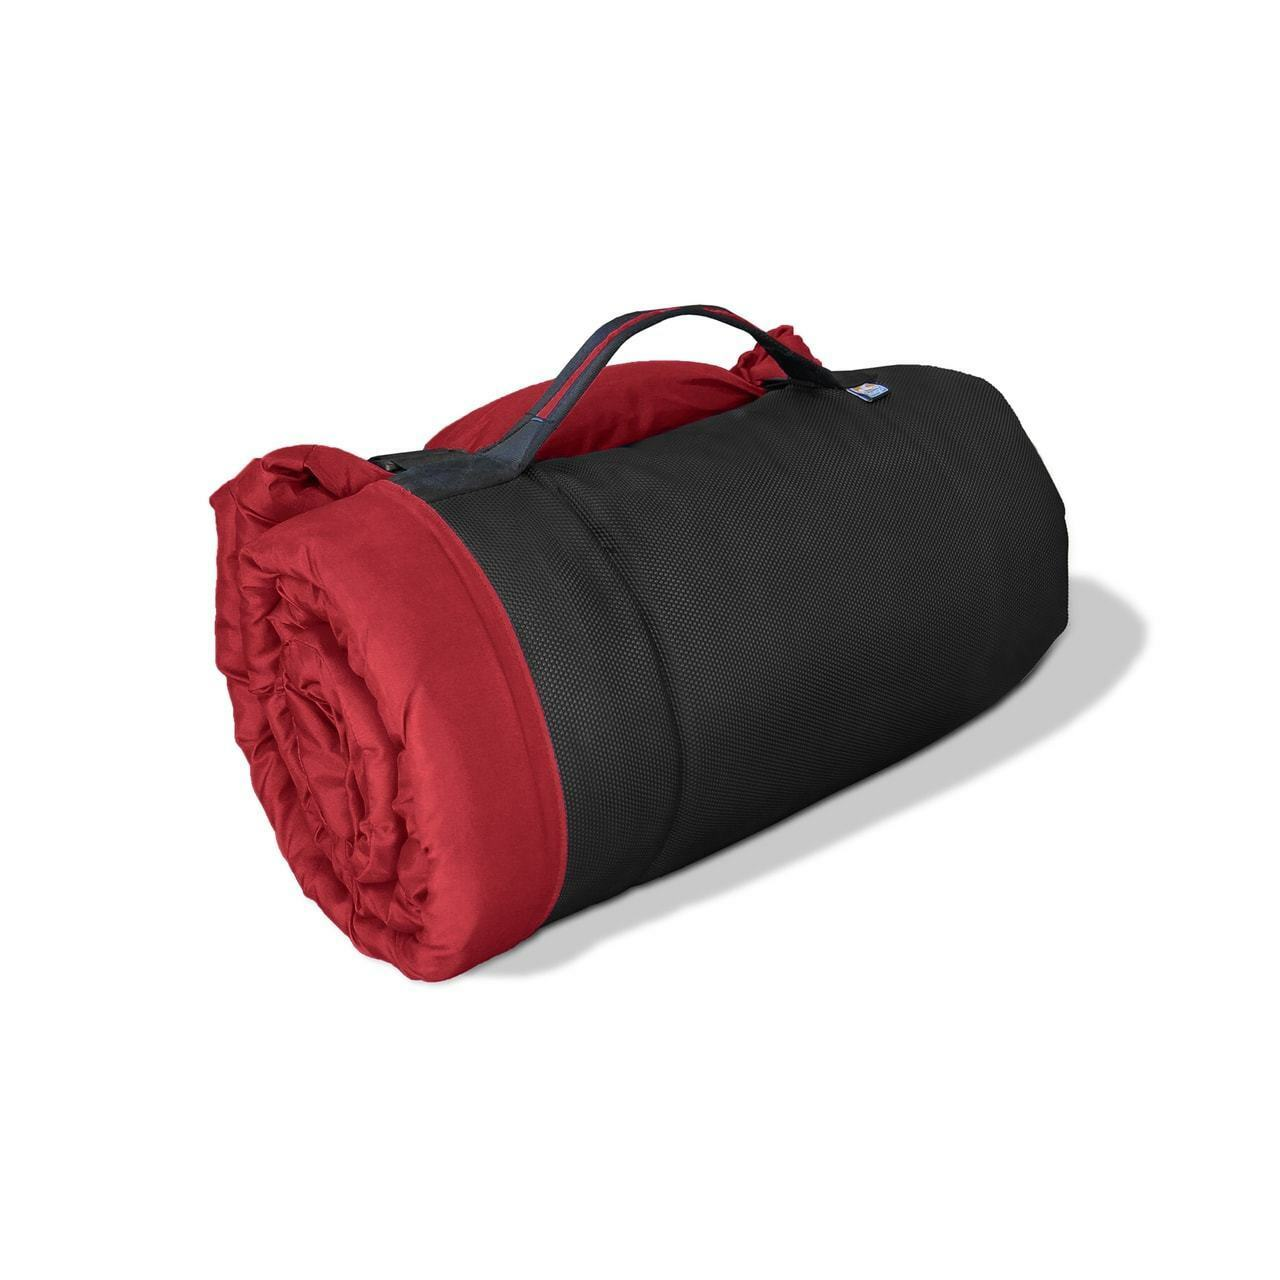 Kurgo Outdoor Camping Dog Bundle- Bed Roll, Backpack, and Canteen